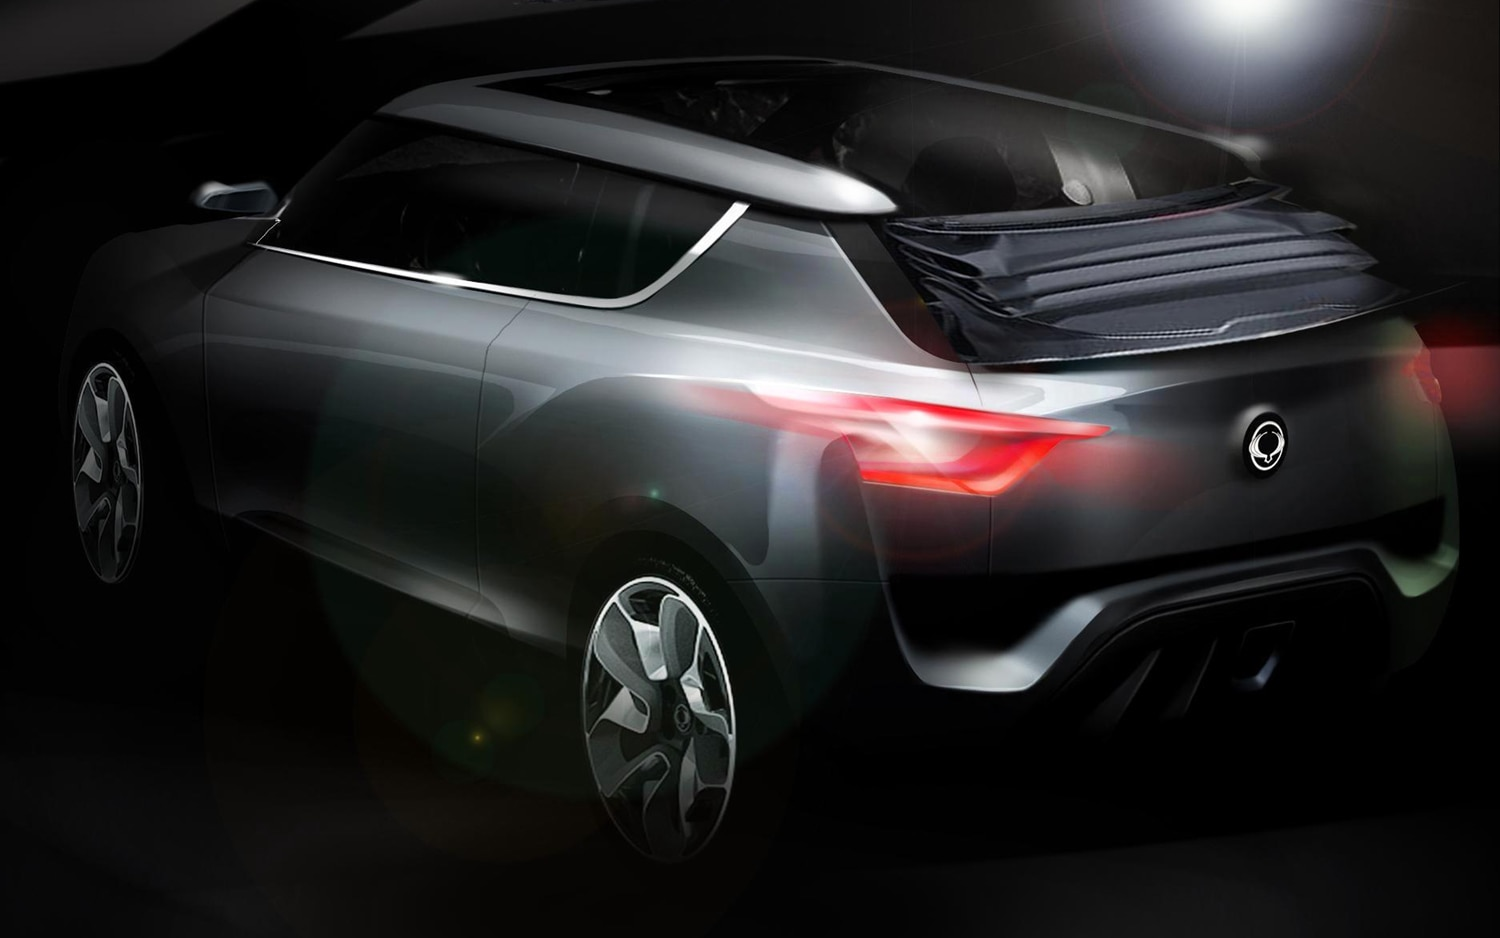 Ssangyong XIV 2 Crossover Convertible Concept Rear View Sketch1